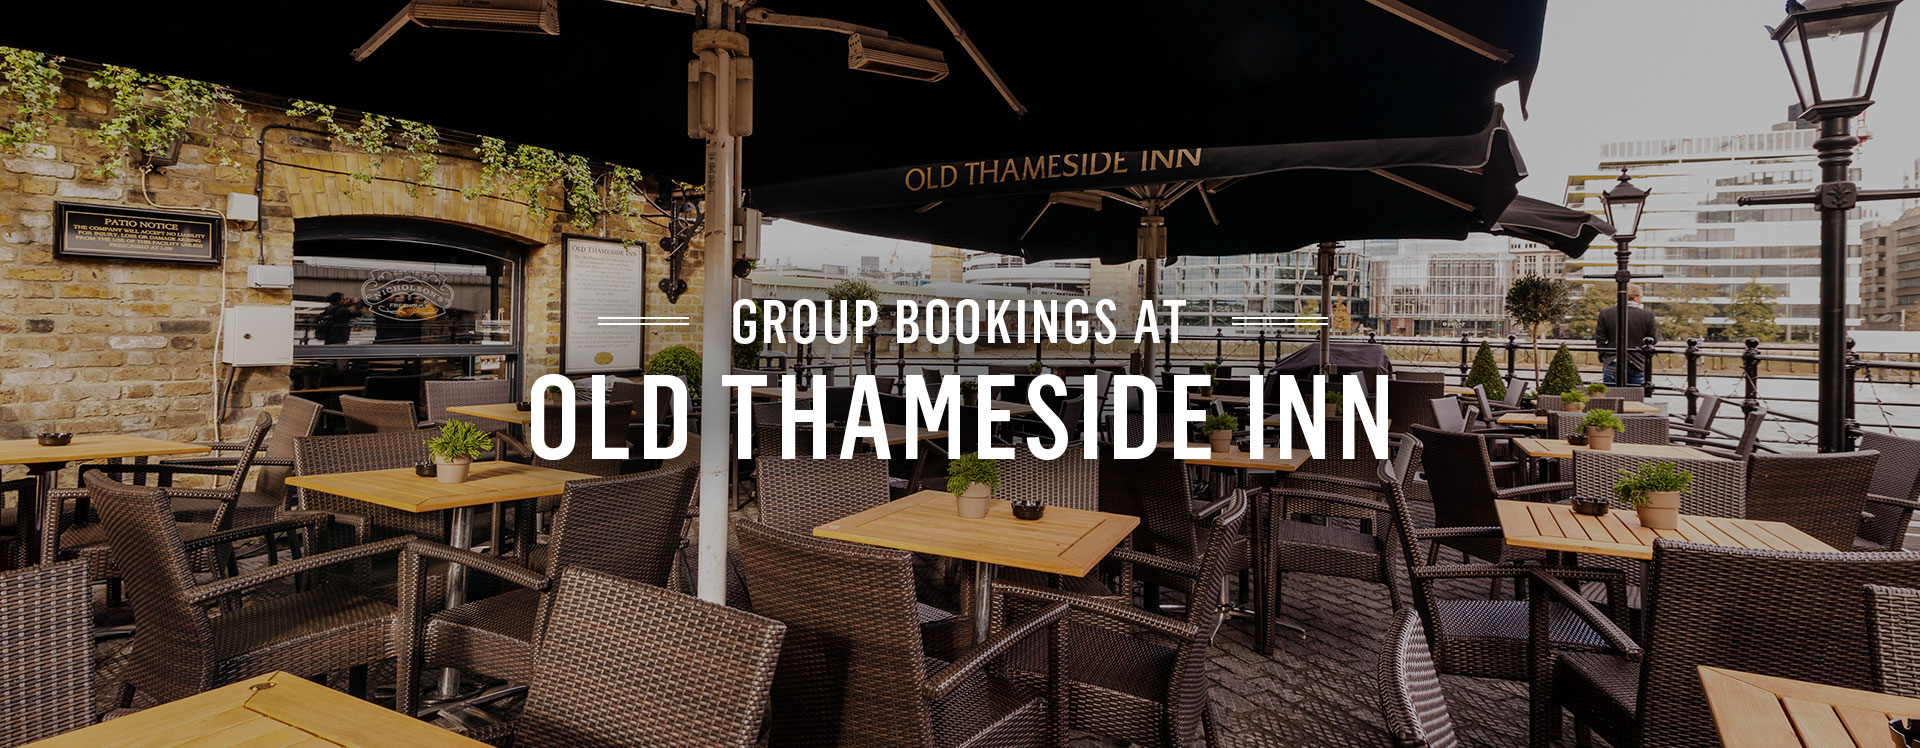 Group Bookings at The Old Thameside Inn